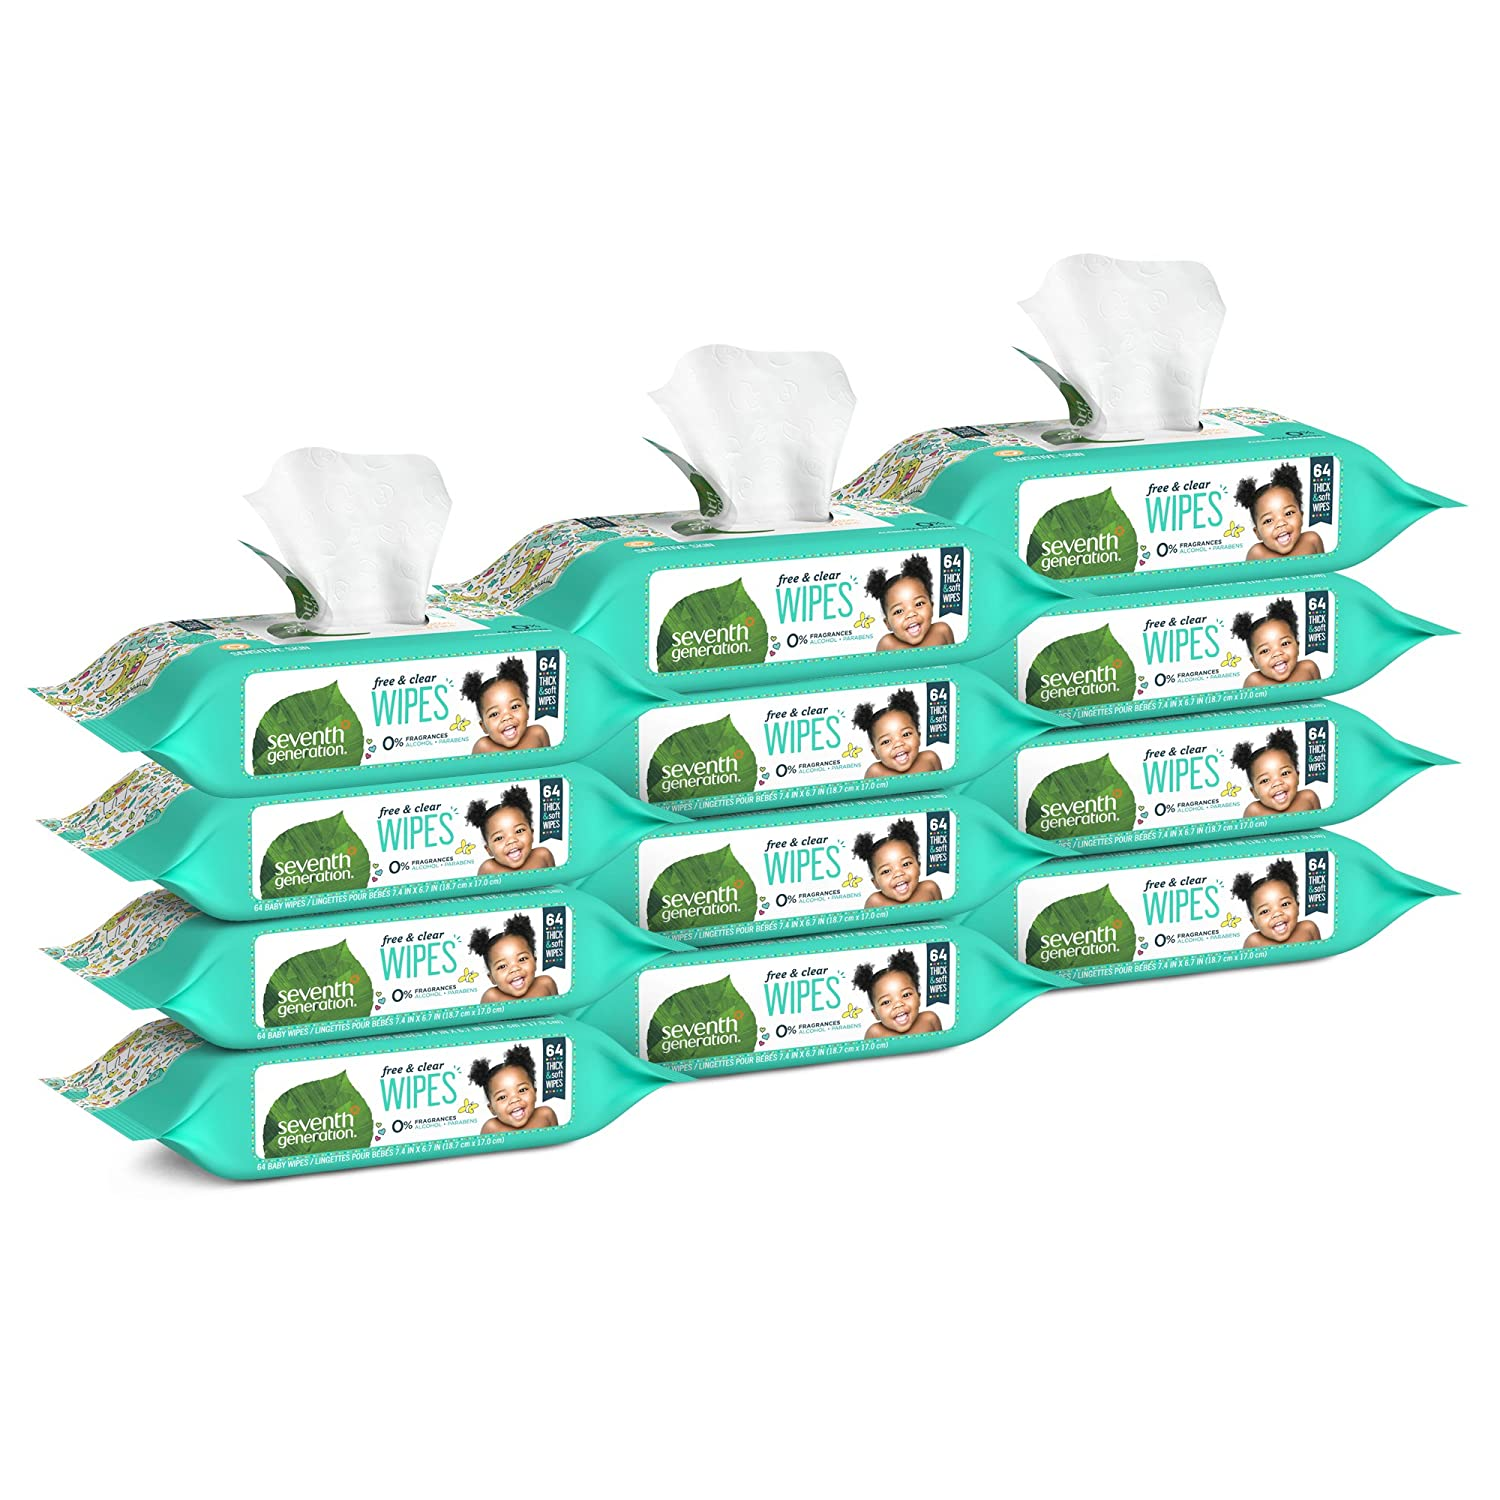 Seventh Generation Thick & Strong Free and Clear Baby Wipes Refill, Pack of 12 (Total 768 Count) Unilever 732913342204